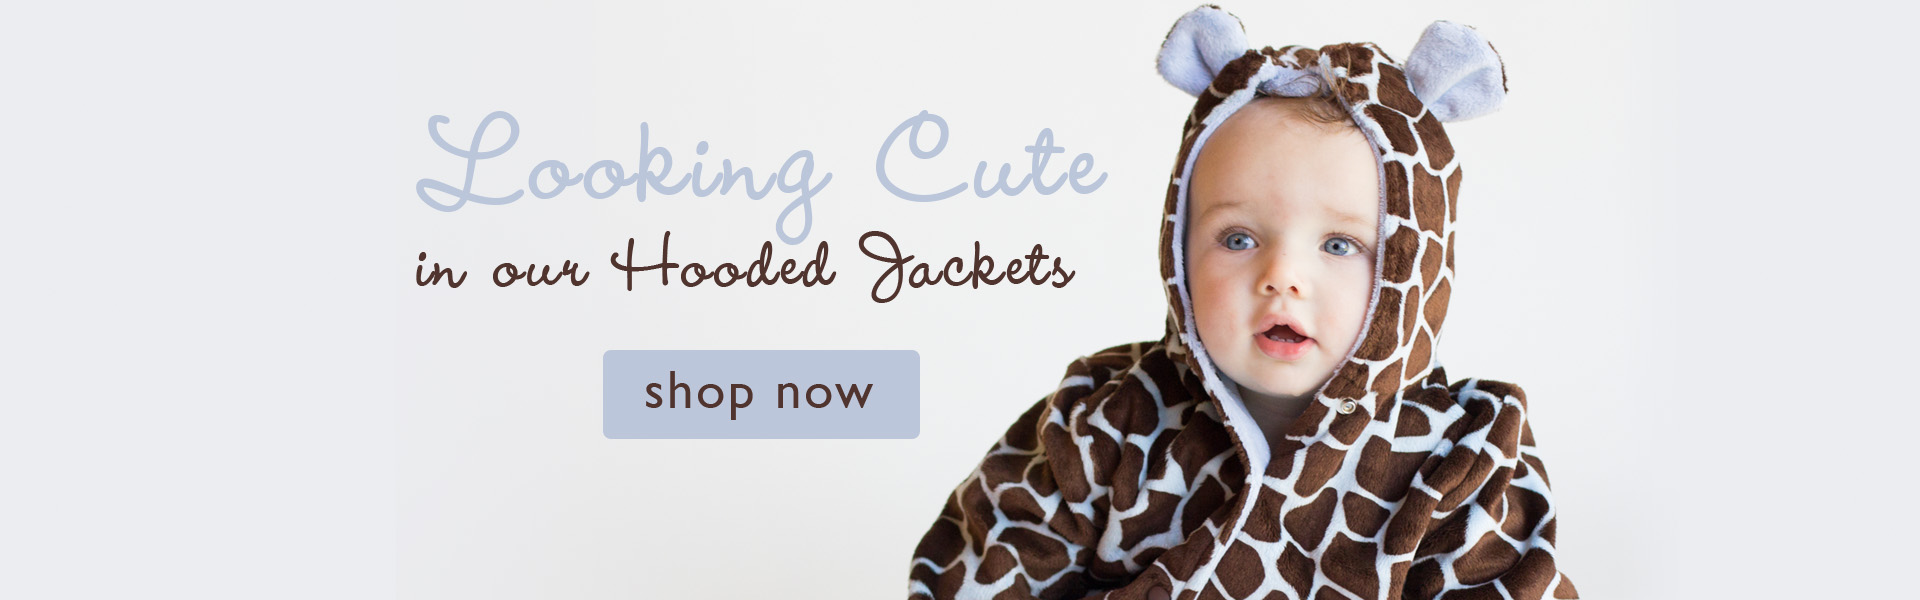 Looking Cute in our Hooded Jackets